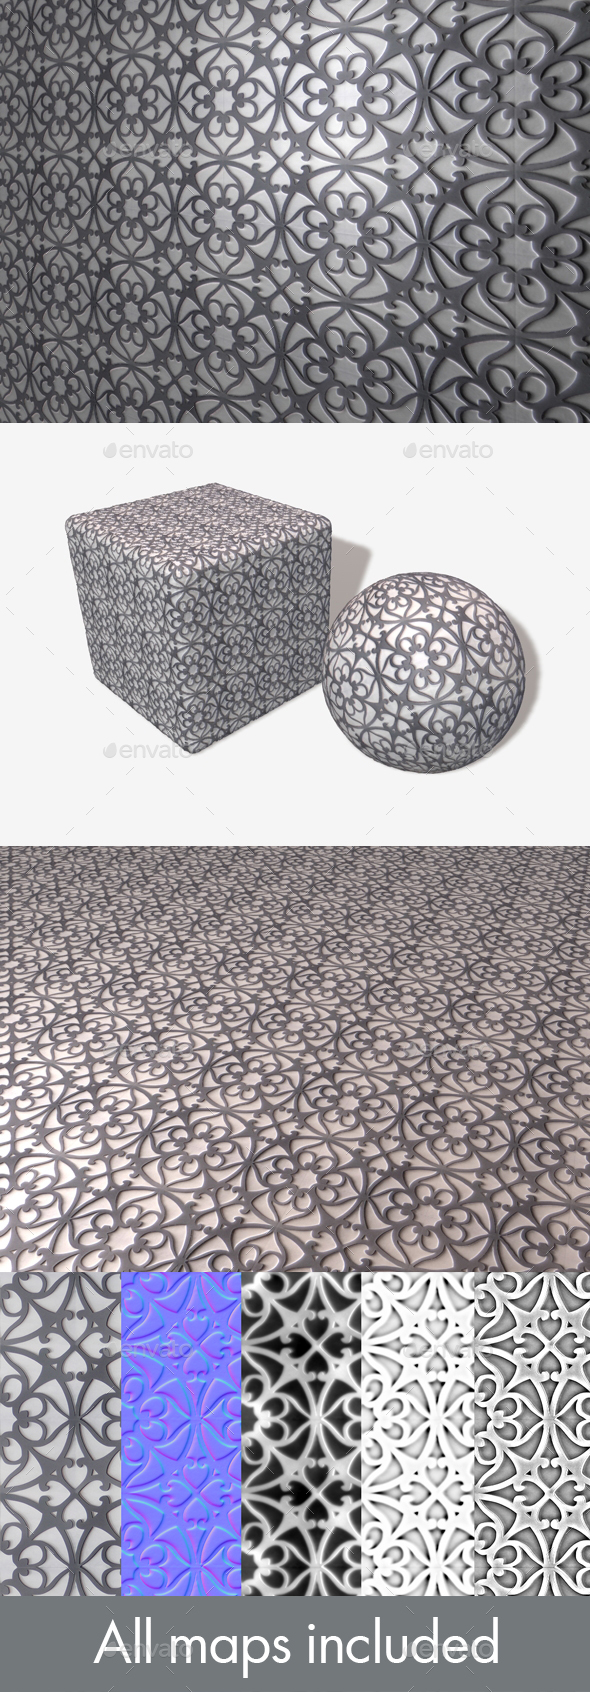 Patterned Metal Seamless Texture - 3DOcean Item for Sale